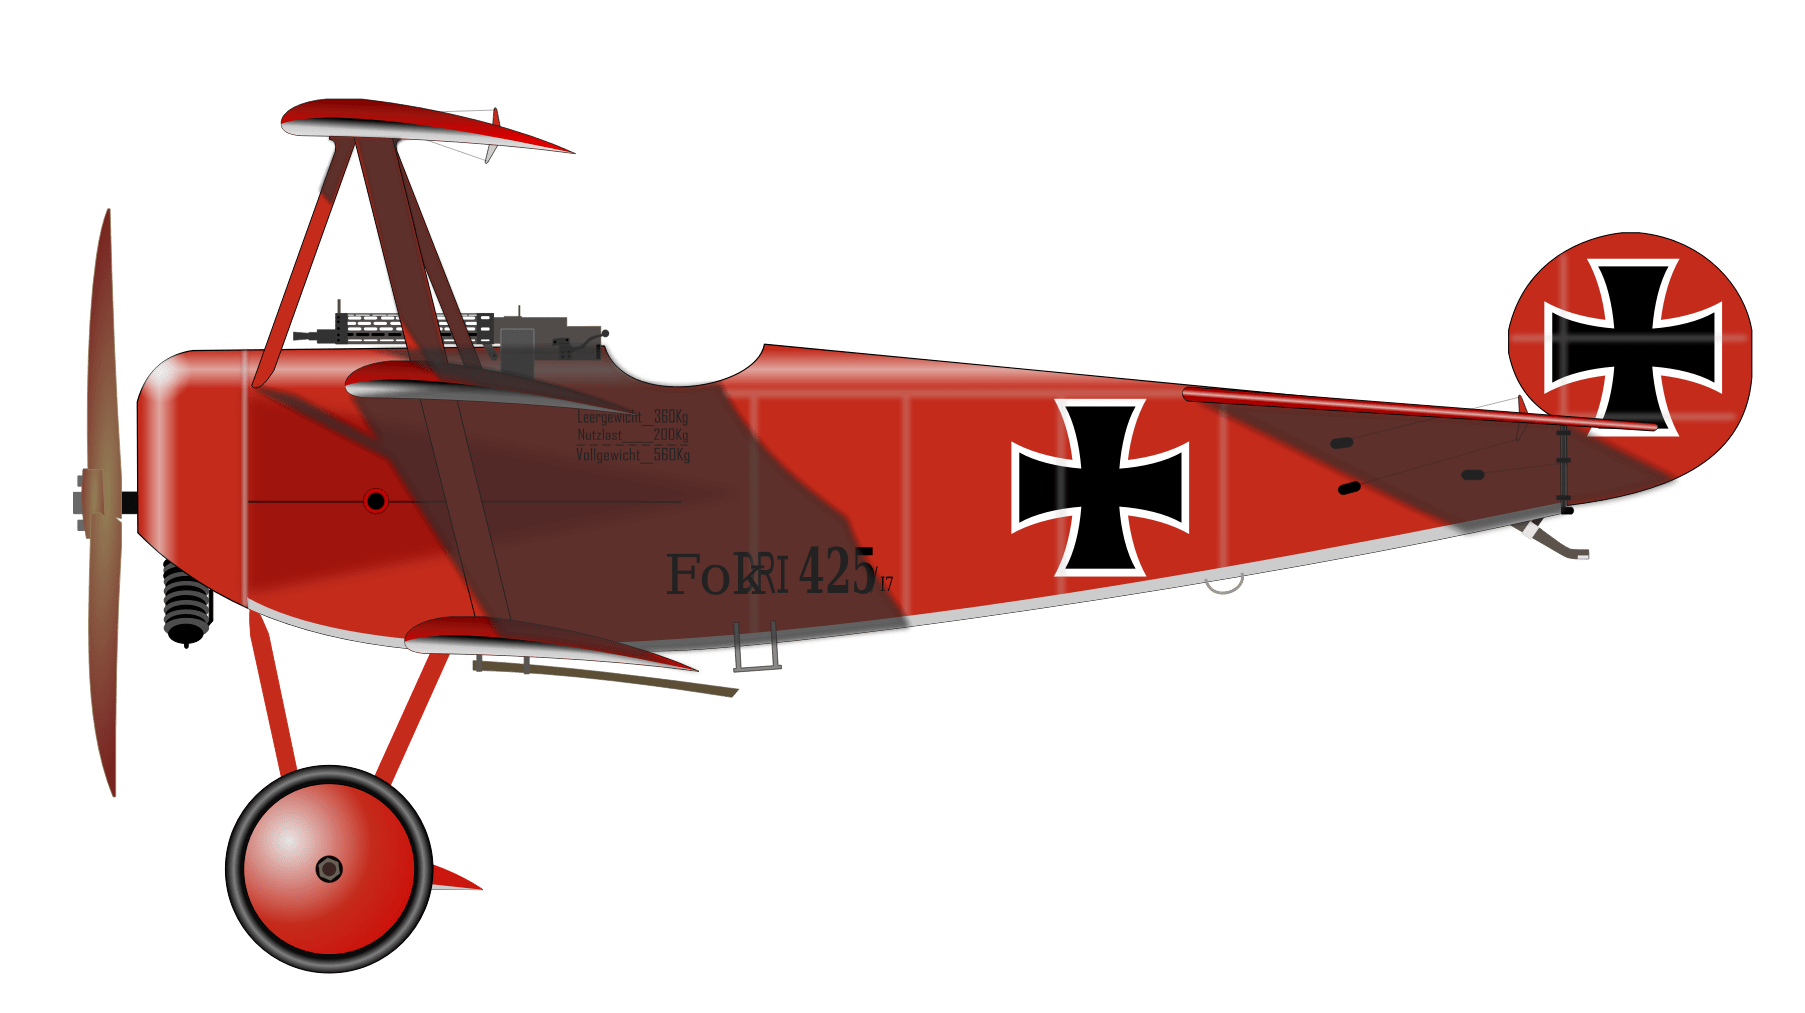 hight resolution of 1805x1013 fresh inspiration clipart plane to use public domain airplane clip